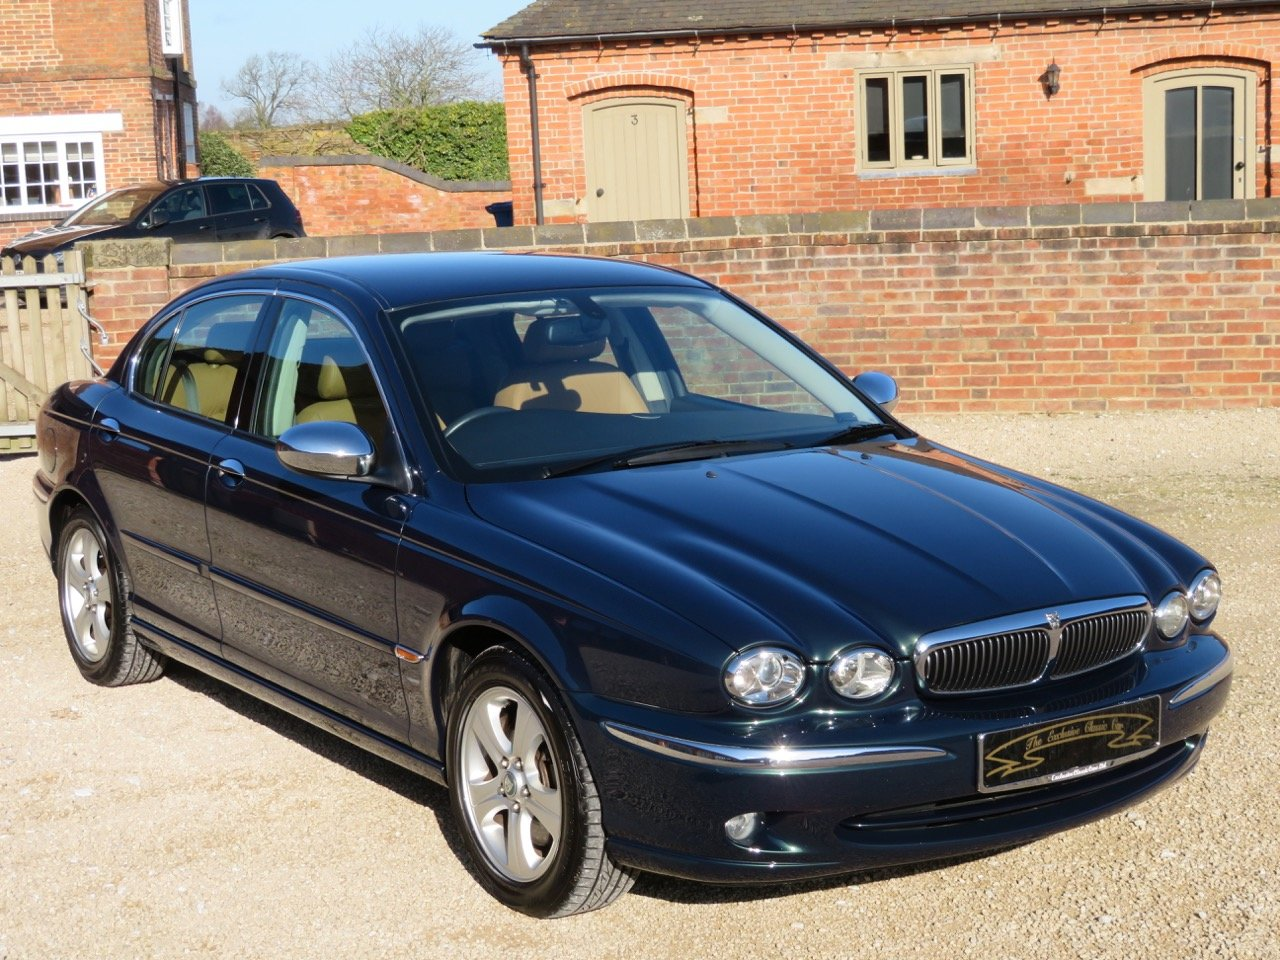 JAGUAR X-TYPE 3.0 V6 AUTO SE 2002 18K MILES FROM NEW 1 OWNER For Sale (picture 1 of 6)